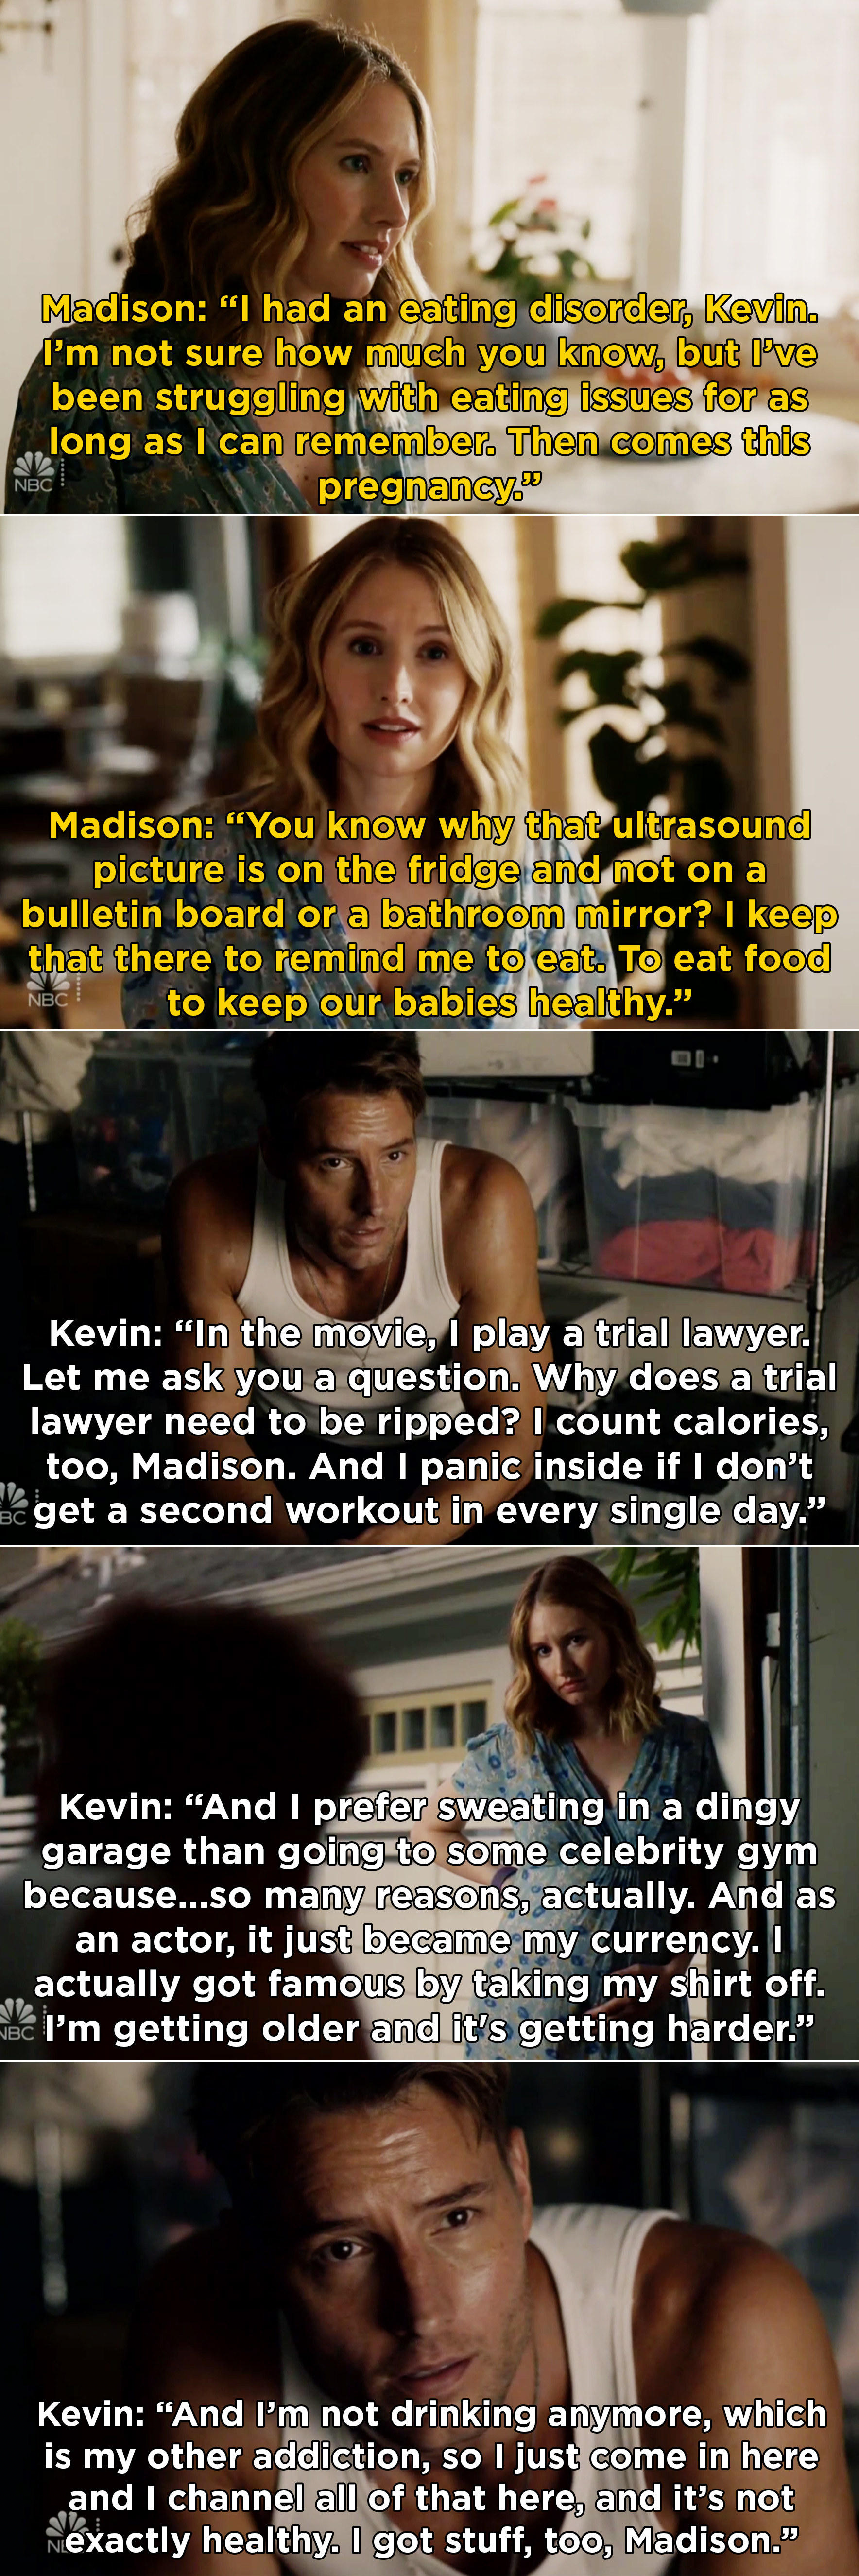 Madison telling Kevin how she has to try every day to eat to keep their babies healthy and Kevin admitting that he has struggled with body images issues too